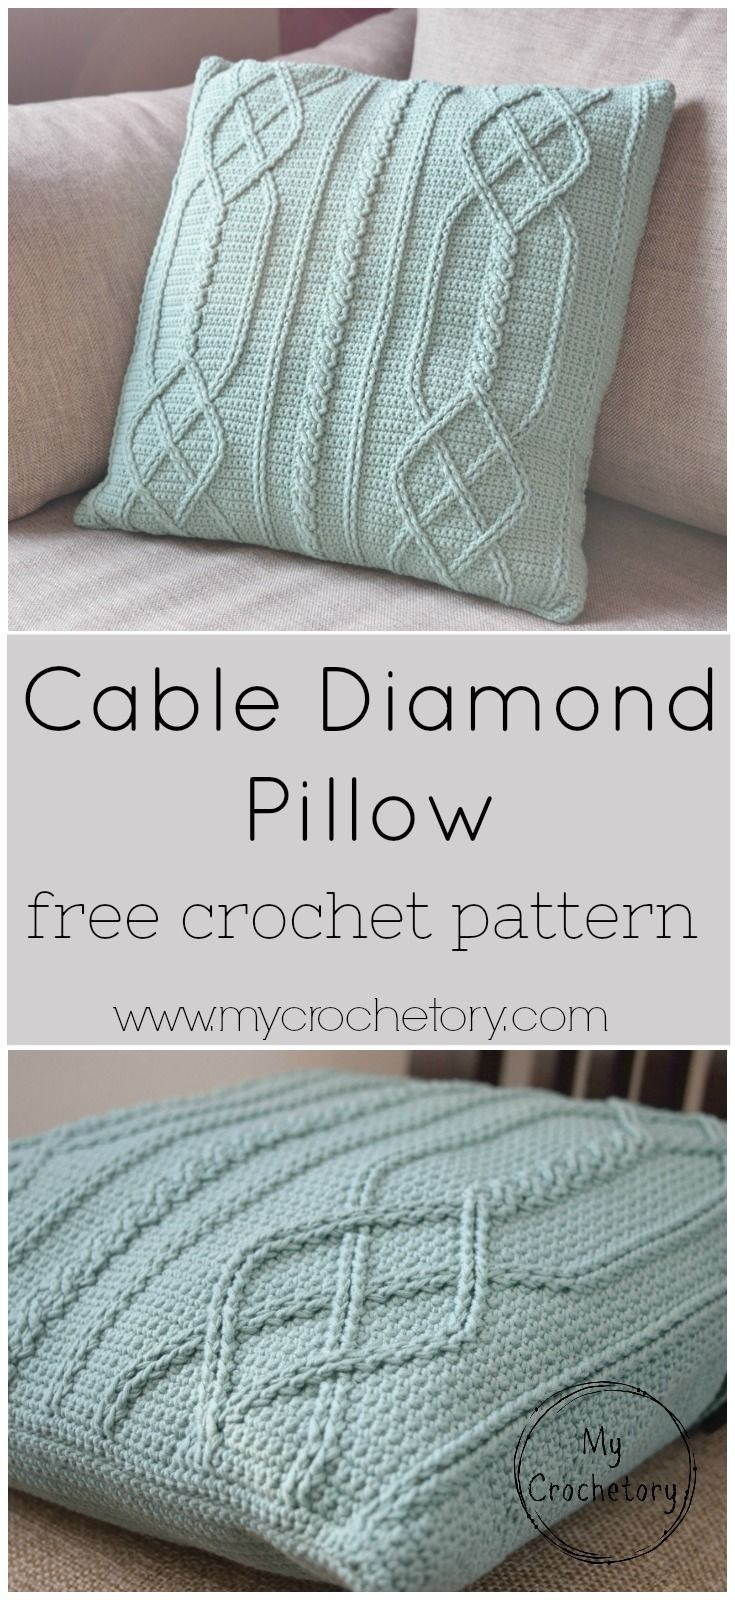 Cable Diamond Pillow - free crochet pattern by | Crochet | Pinterest ...